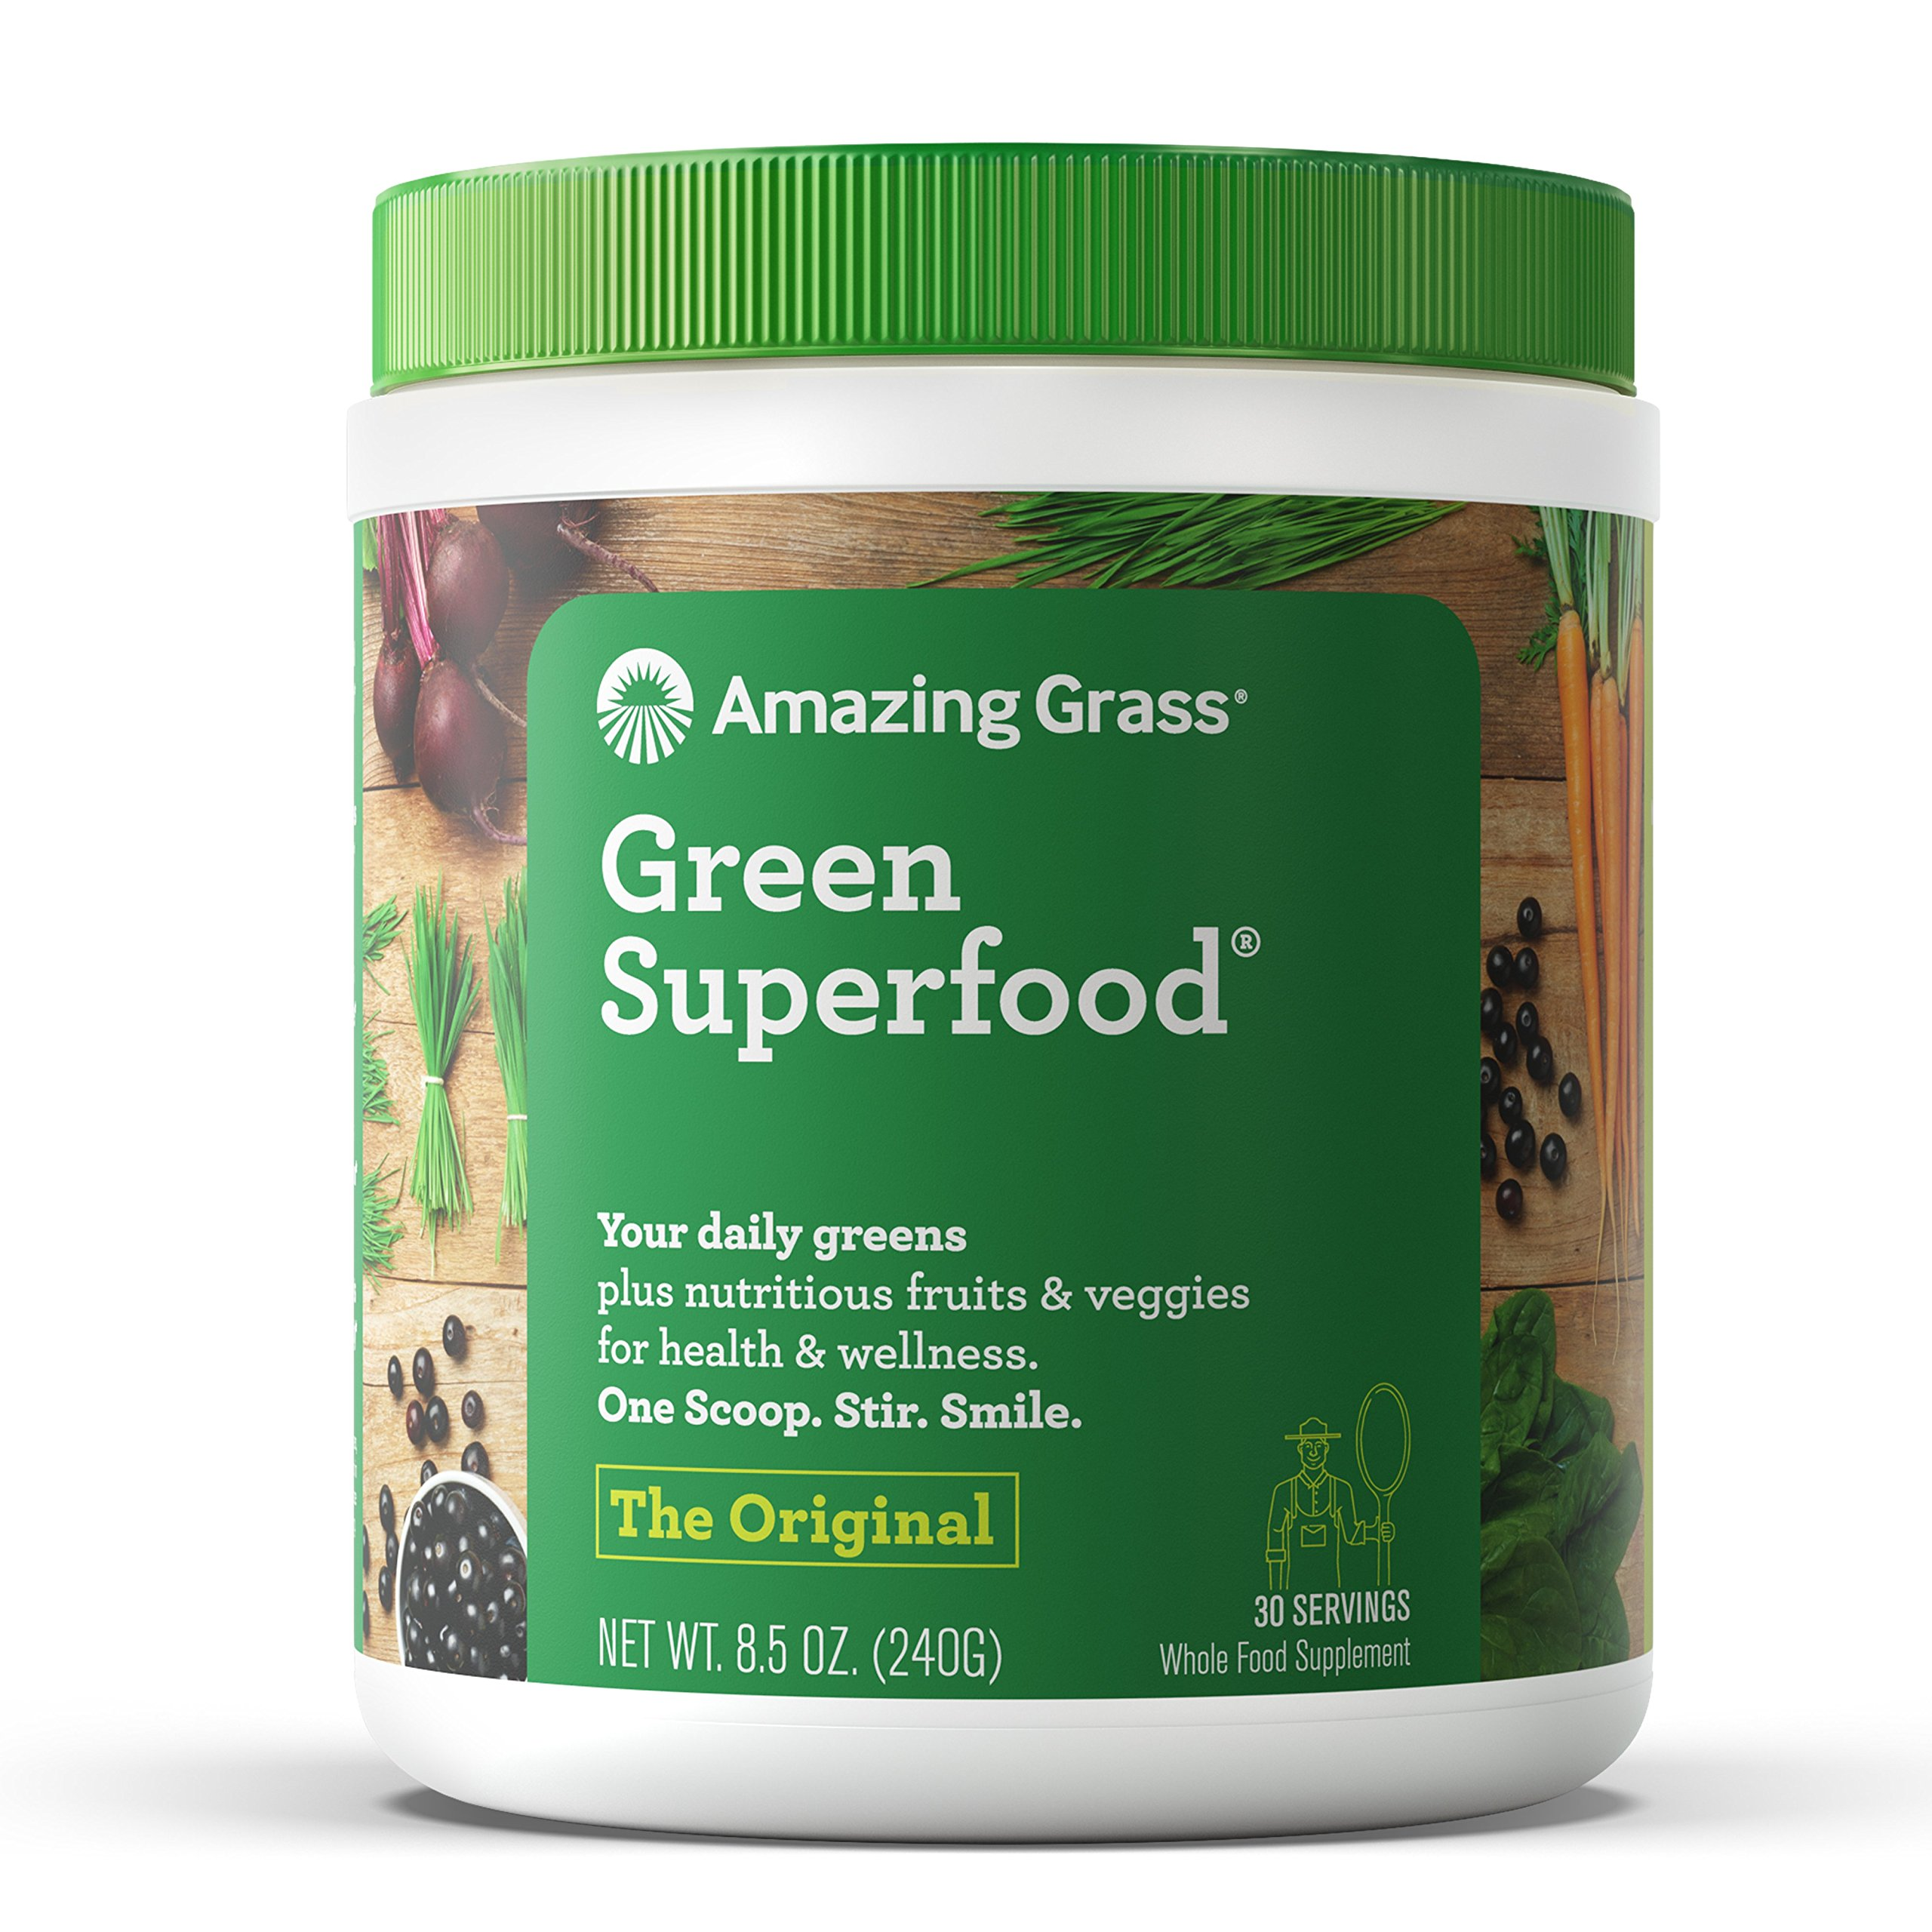 Amazing Grass Green Superfood Organic Powder with Wheat Grass and Greens, Flavor: Original, 30 Servings, 1 scope = 2 servings of veggies